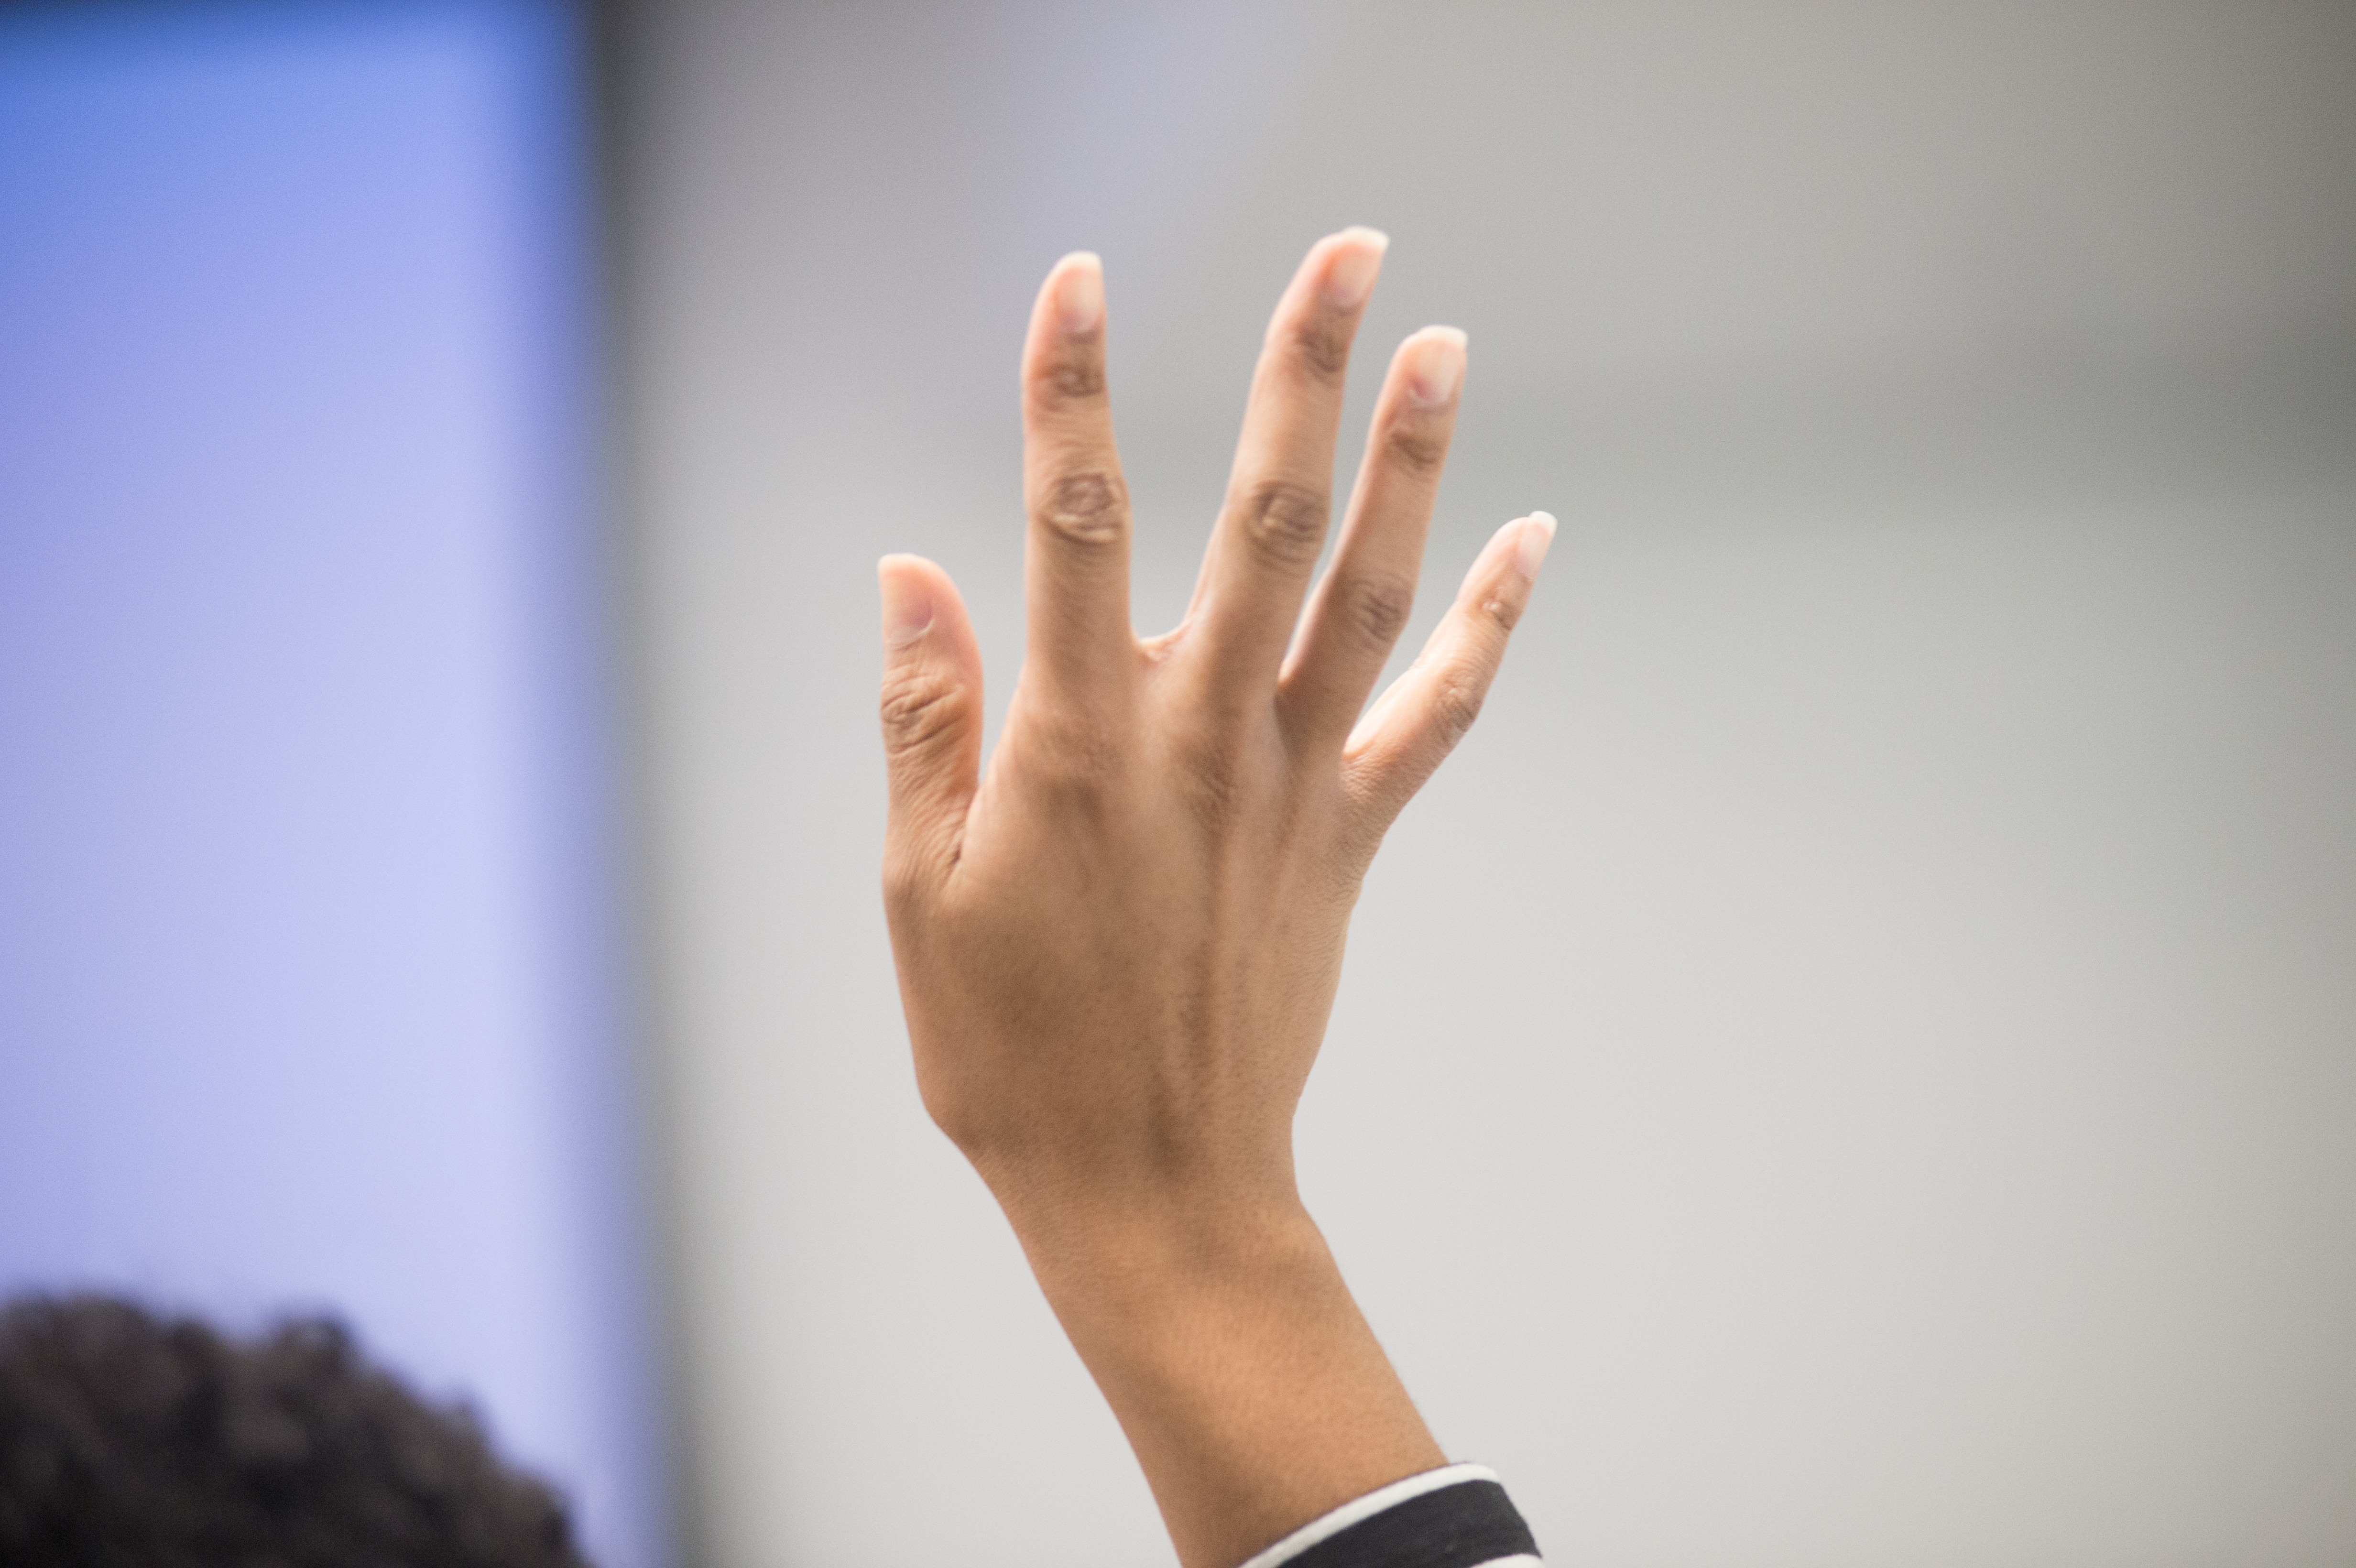 A hand is raised for questions during the U.S. Department of Agriculture (USDA) and U.S. Environmental Protection Agency (EPA) sponsored National Civil Rights Conference, at the U.S. Institute of Peace in Washington, D.C. on Wednesday, Nov. 4, 2015. This interactive training event will feature voices of experience, research, discussions, and thought-provoking dialogue. Workshop, Panel and Town Hall sessions will feature representatives from federal and local governments, tribes, community groups, business and industry, public interest groups, academia, and other entities. The integrative forum will provide conference participants an opportunity to network with colleagues representing a variety of interests who are from diverse organizations. Conference participants will accrue informative and productive resources that can support their individual program goals and objectives. We wish every conference participant a productive and positive experience through innovation and collaboration. USDA photo by Lance Cheung.